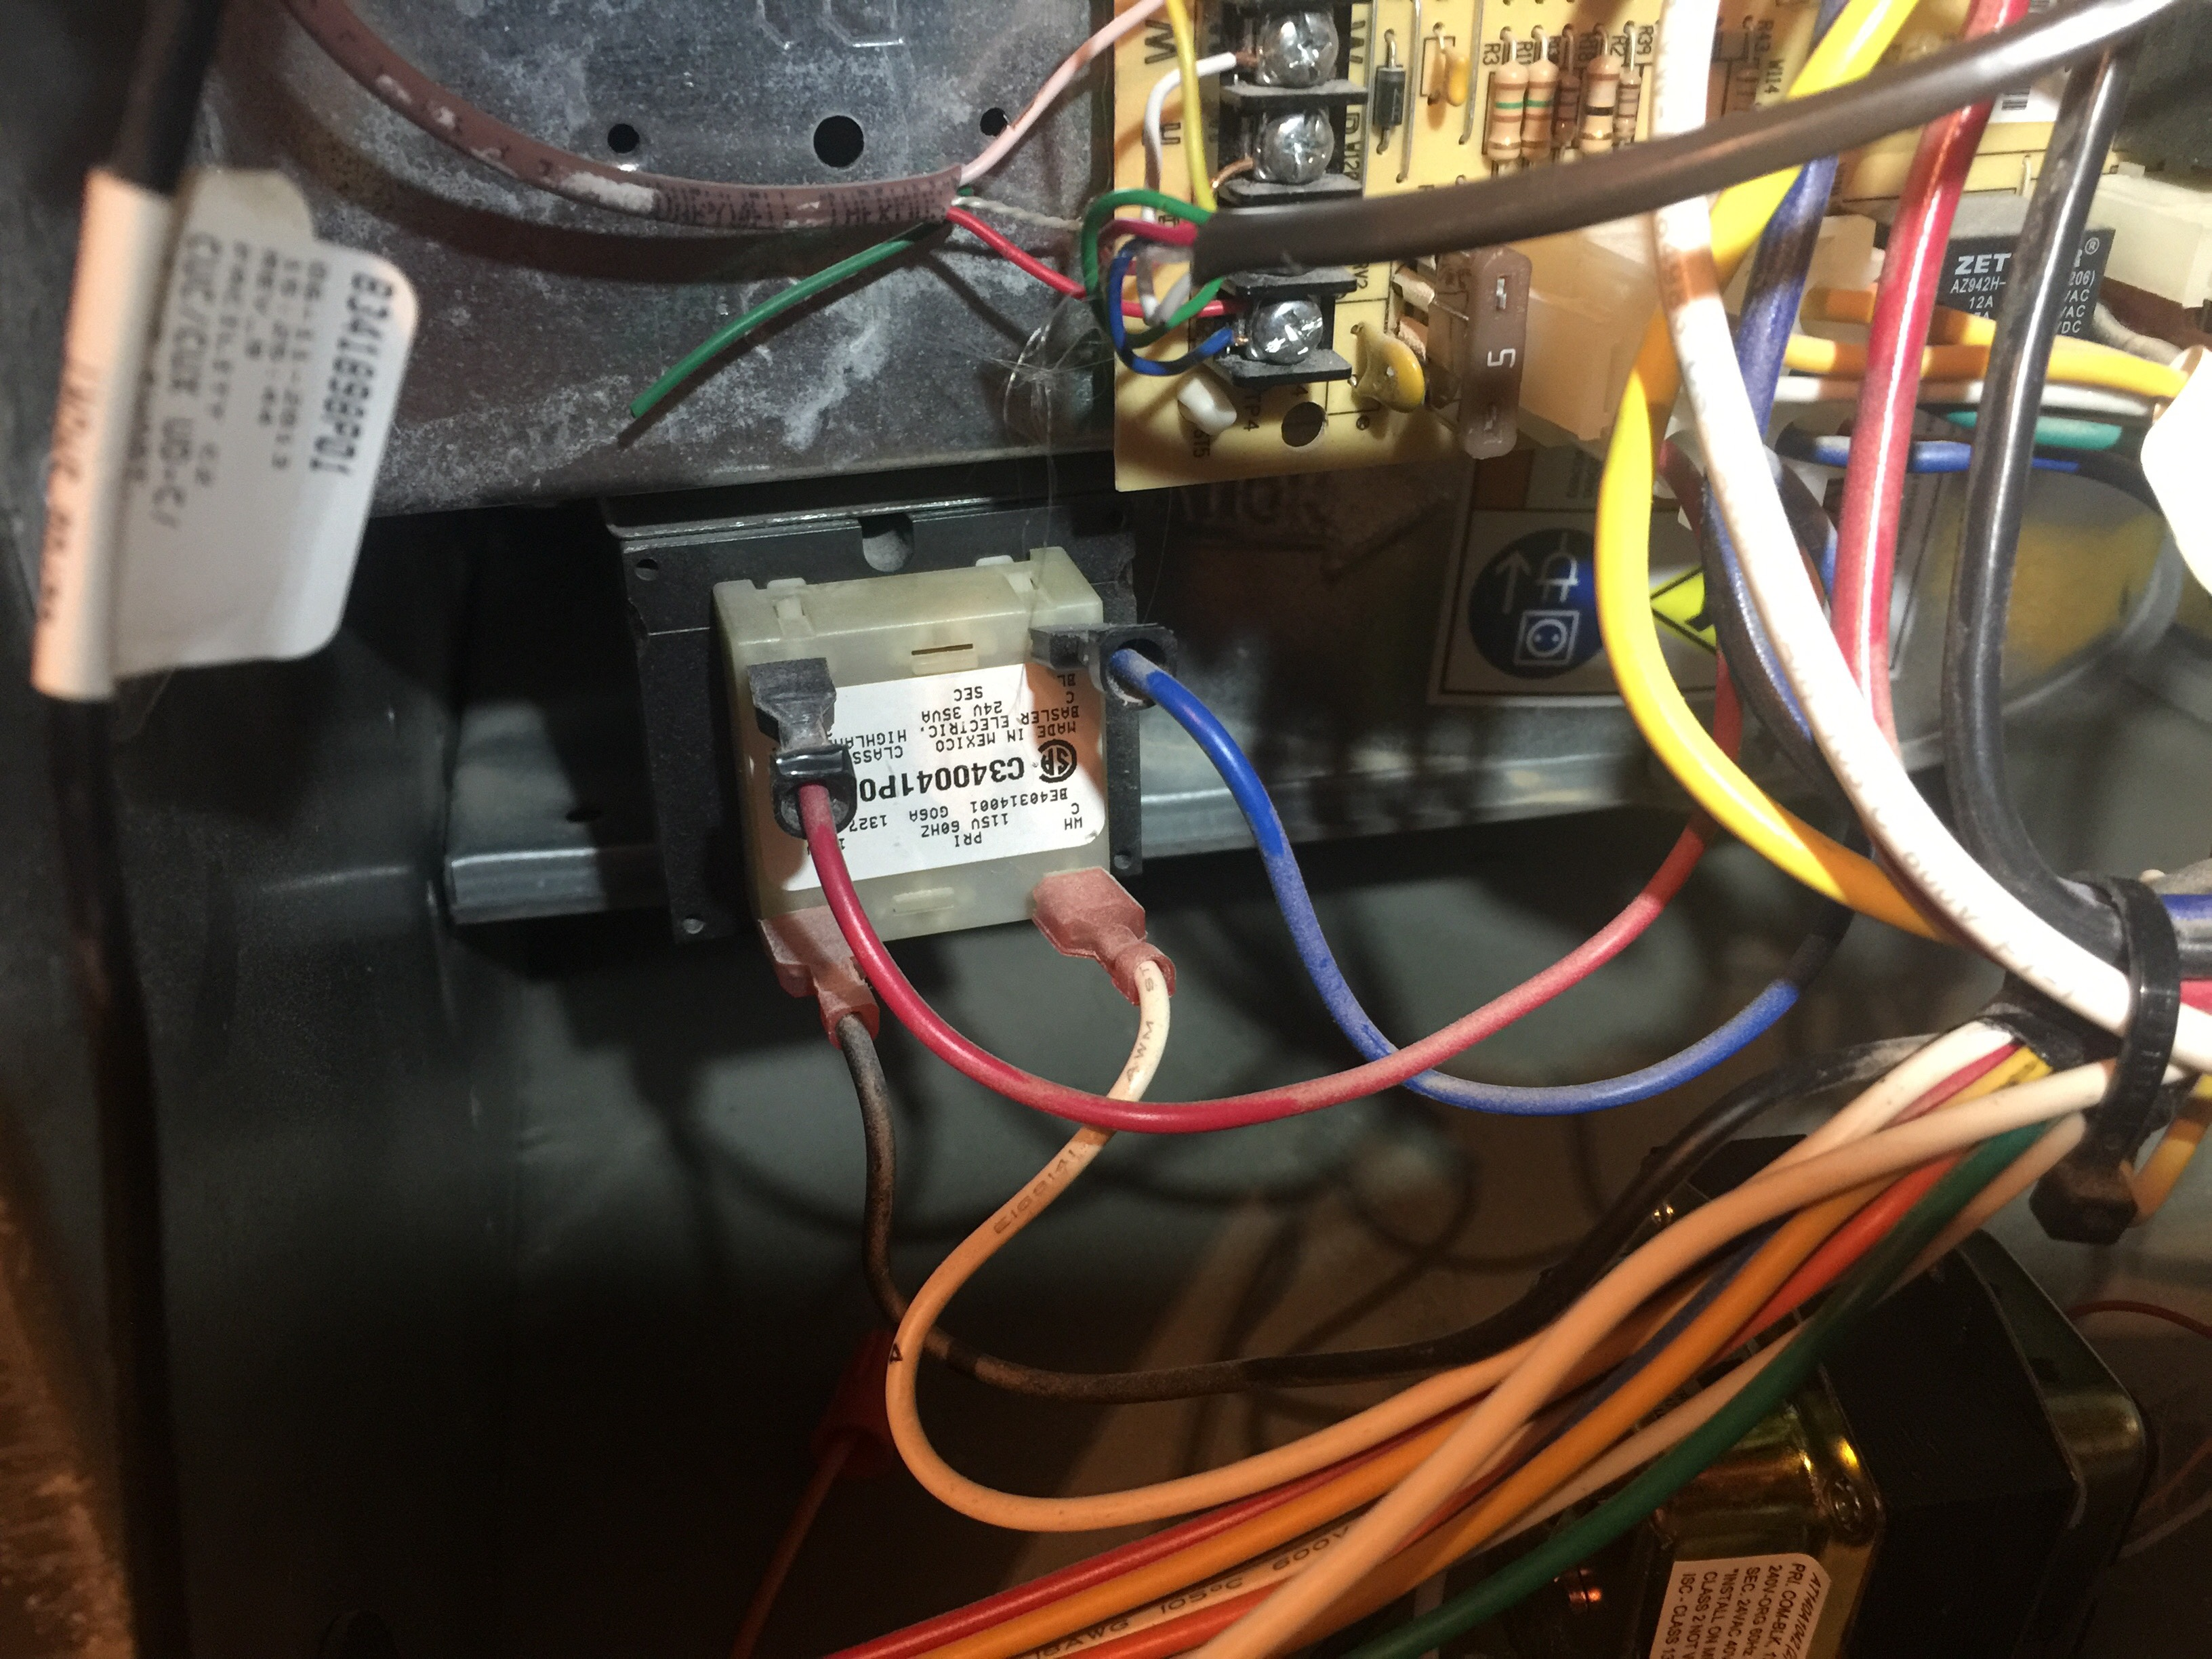 I've installed a replacement HZ311 zone board to my HVAC